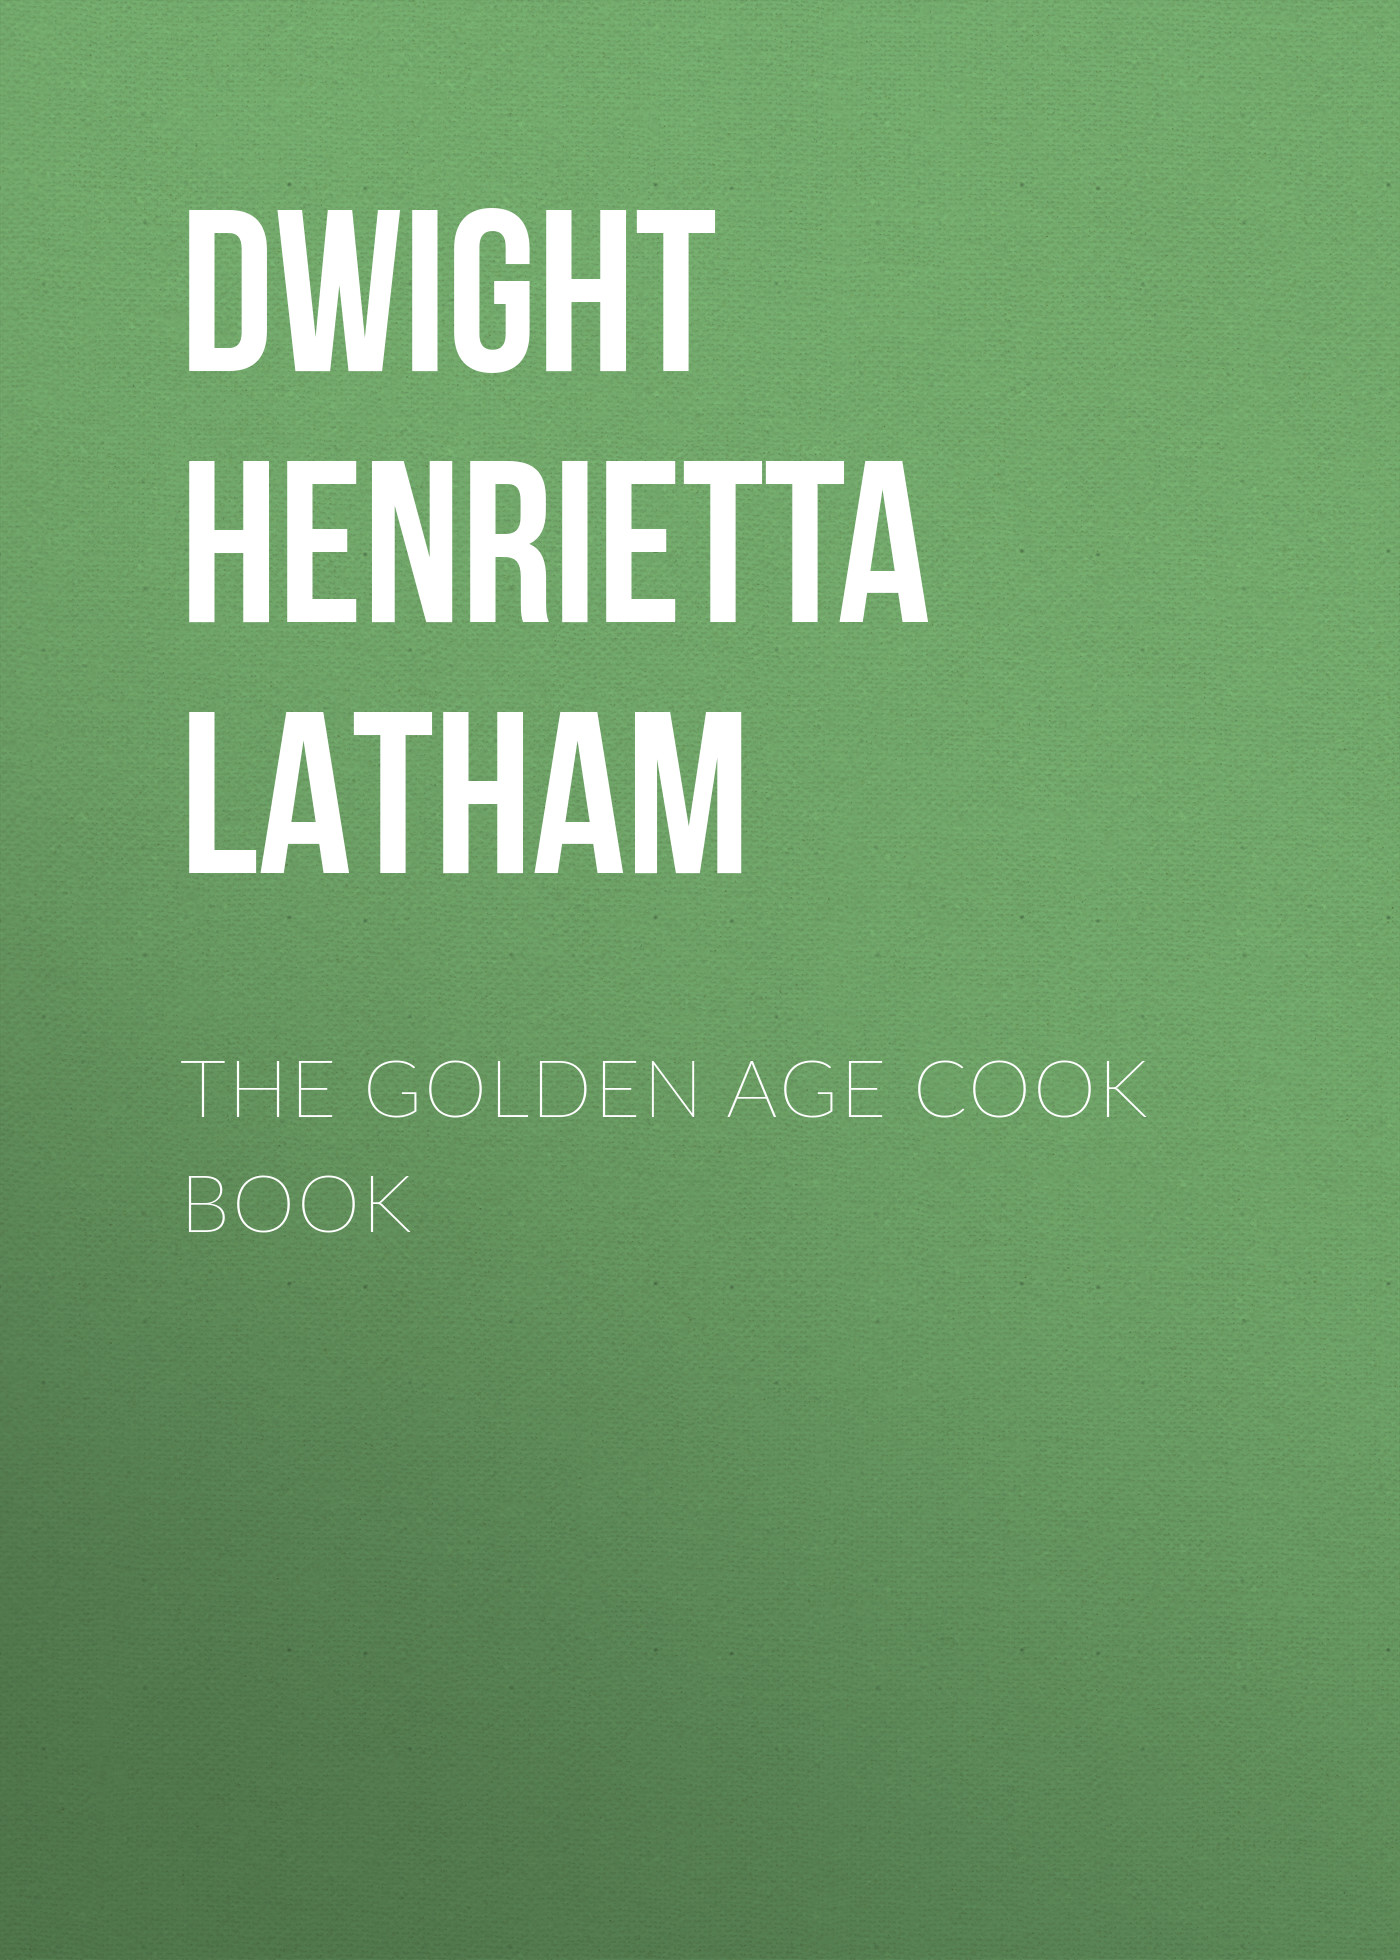 Dwight Henrietta Latham The Golden Age Cook Book худи print bar golden age